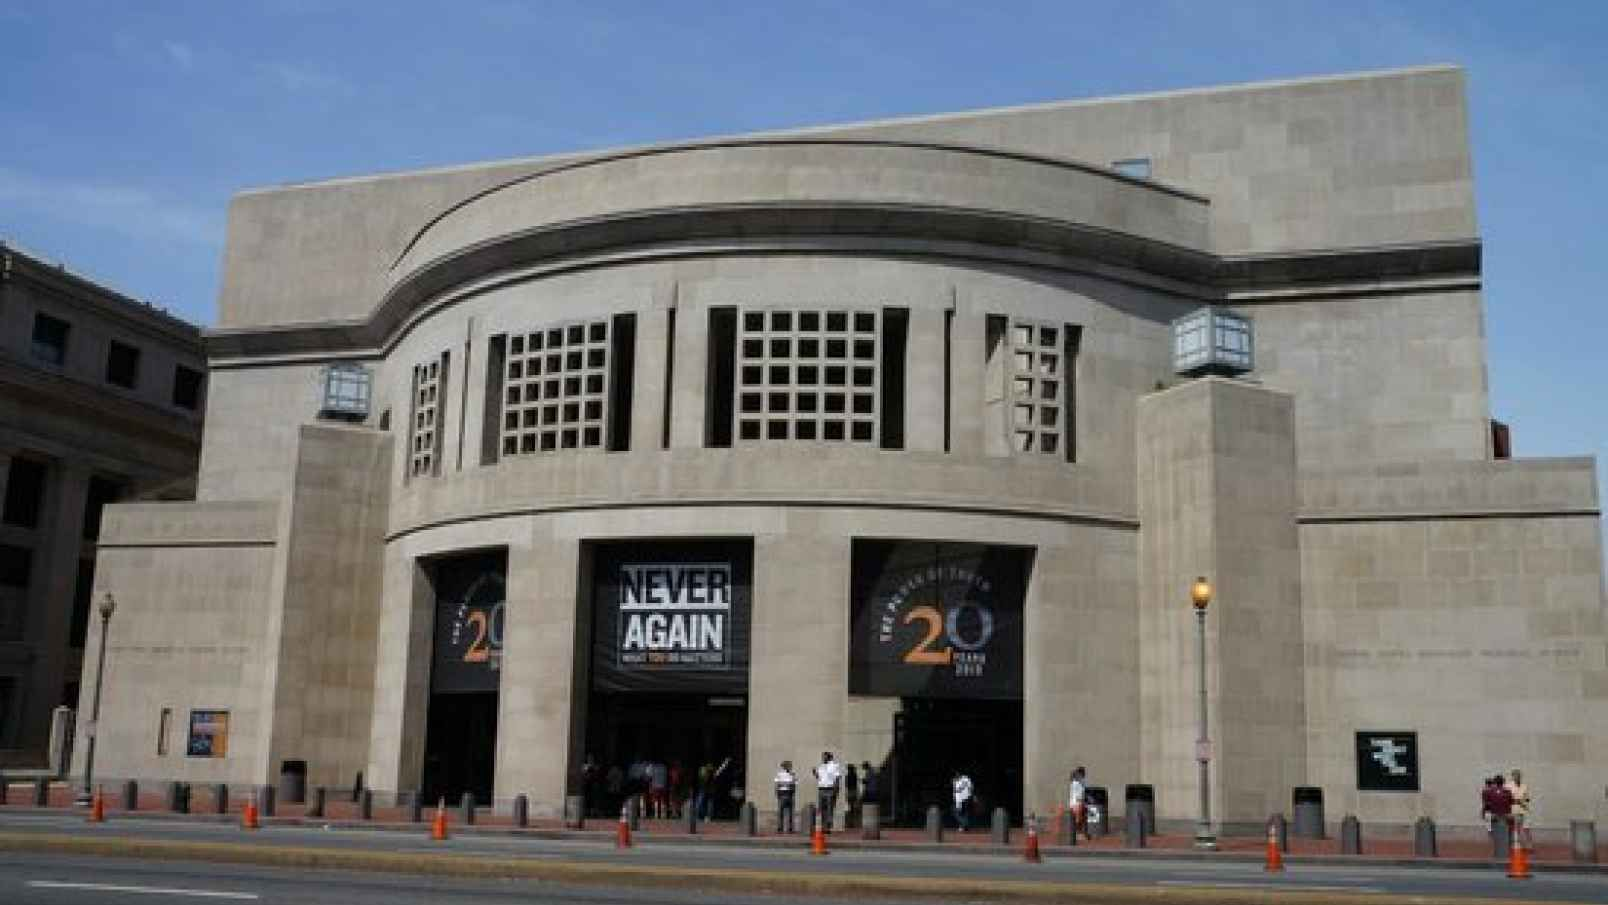 The Holocaust Museum In Baltimore Family Activities Pinterest - Concentration camp museums in usa